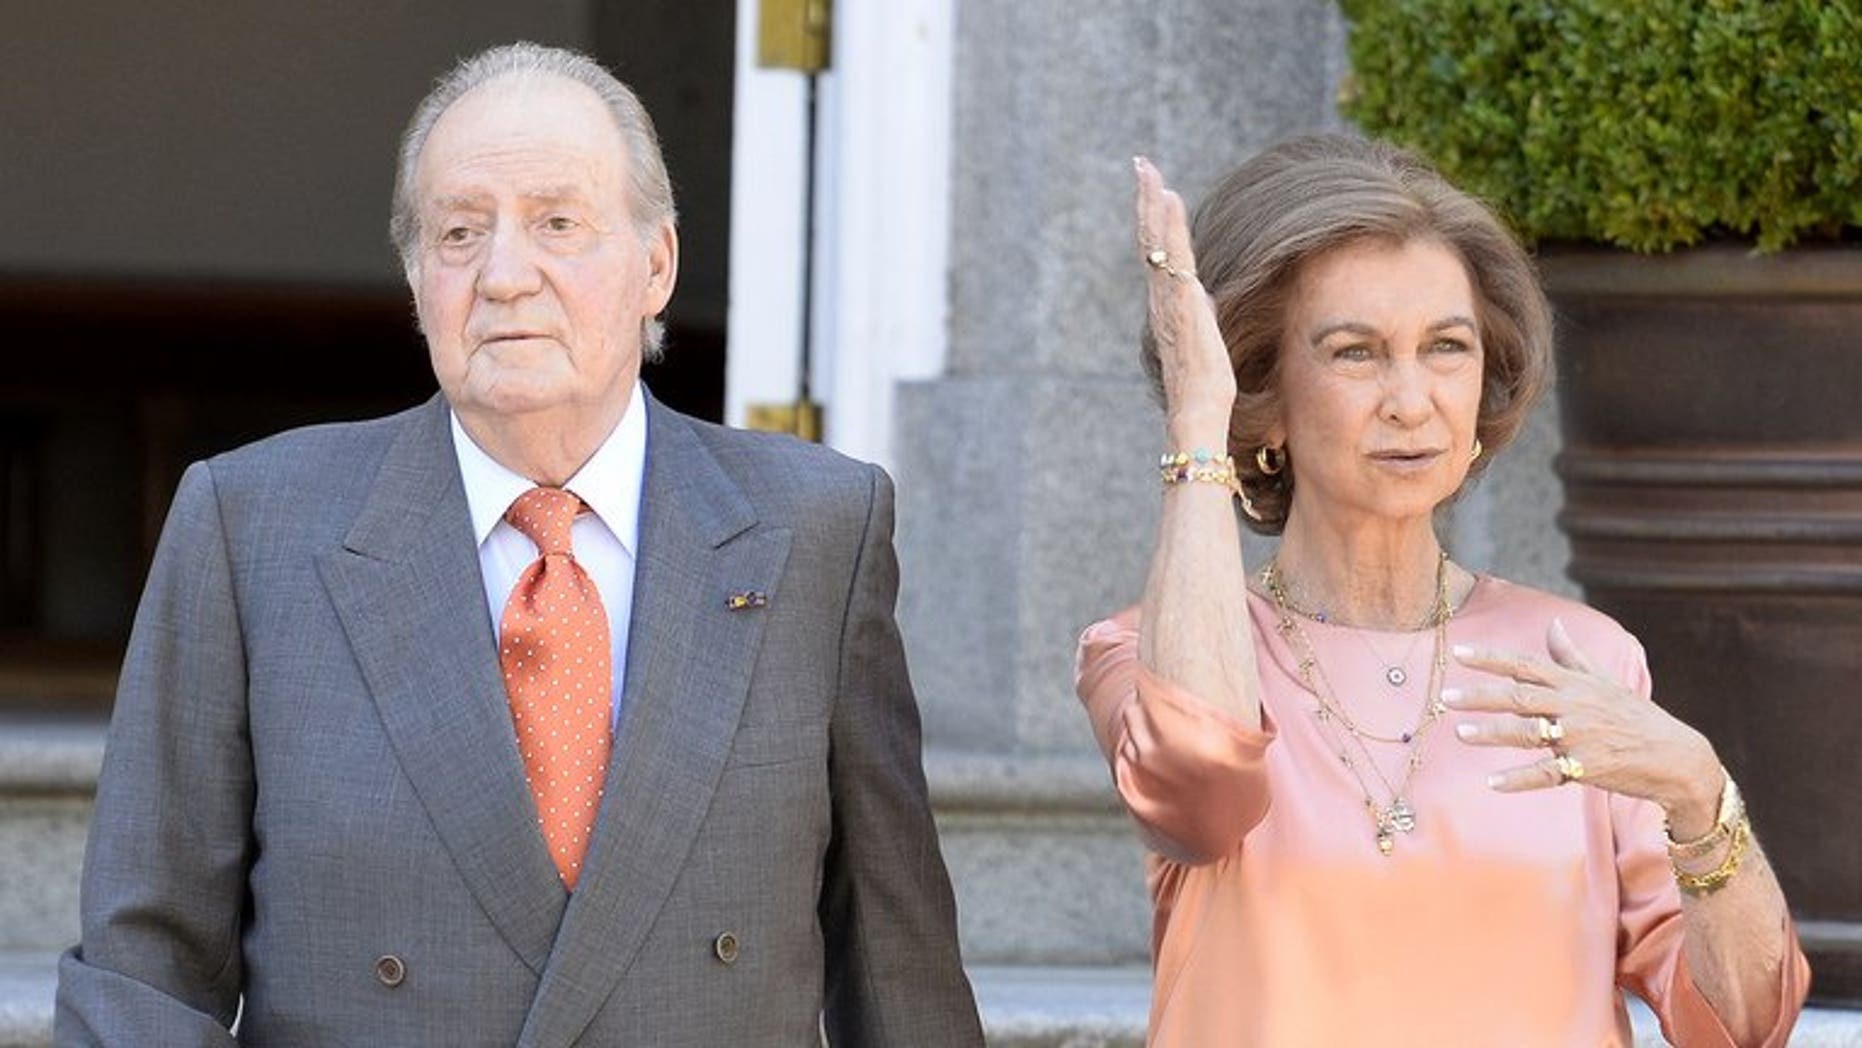 Spain's King Juan Carlos and Queen Sofia, seen at the Palacio de la Zarzuela in Madrid on September 19, 2013. The 75-year-old king is due to have hip surgery -- his eighth operation in just over three years.